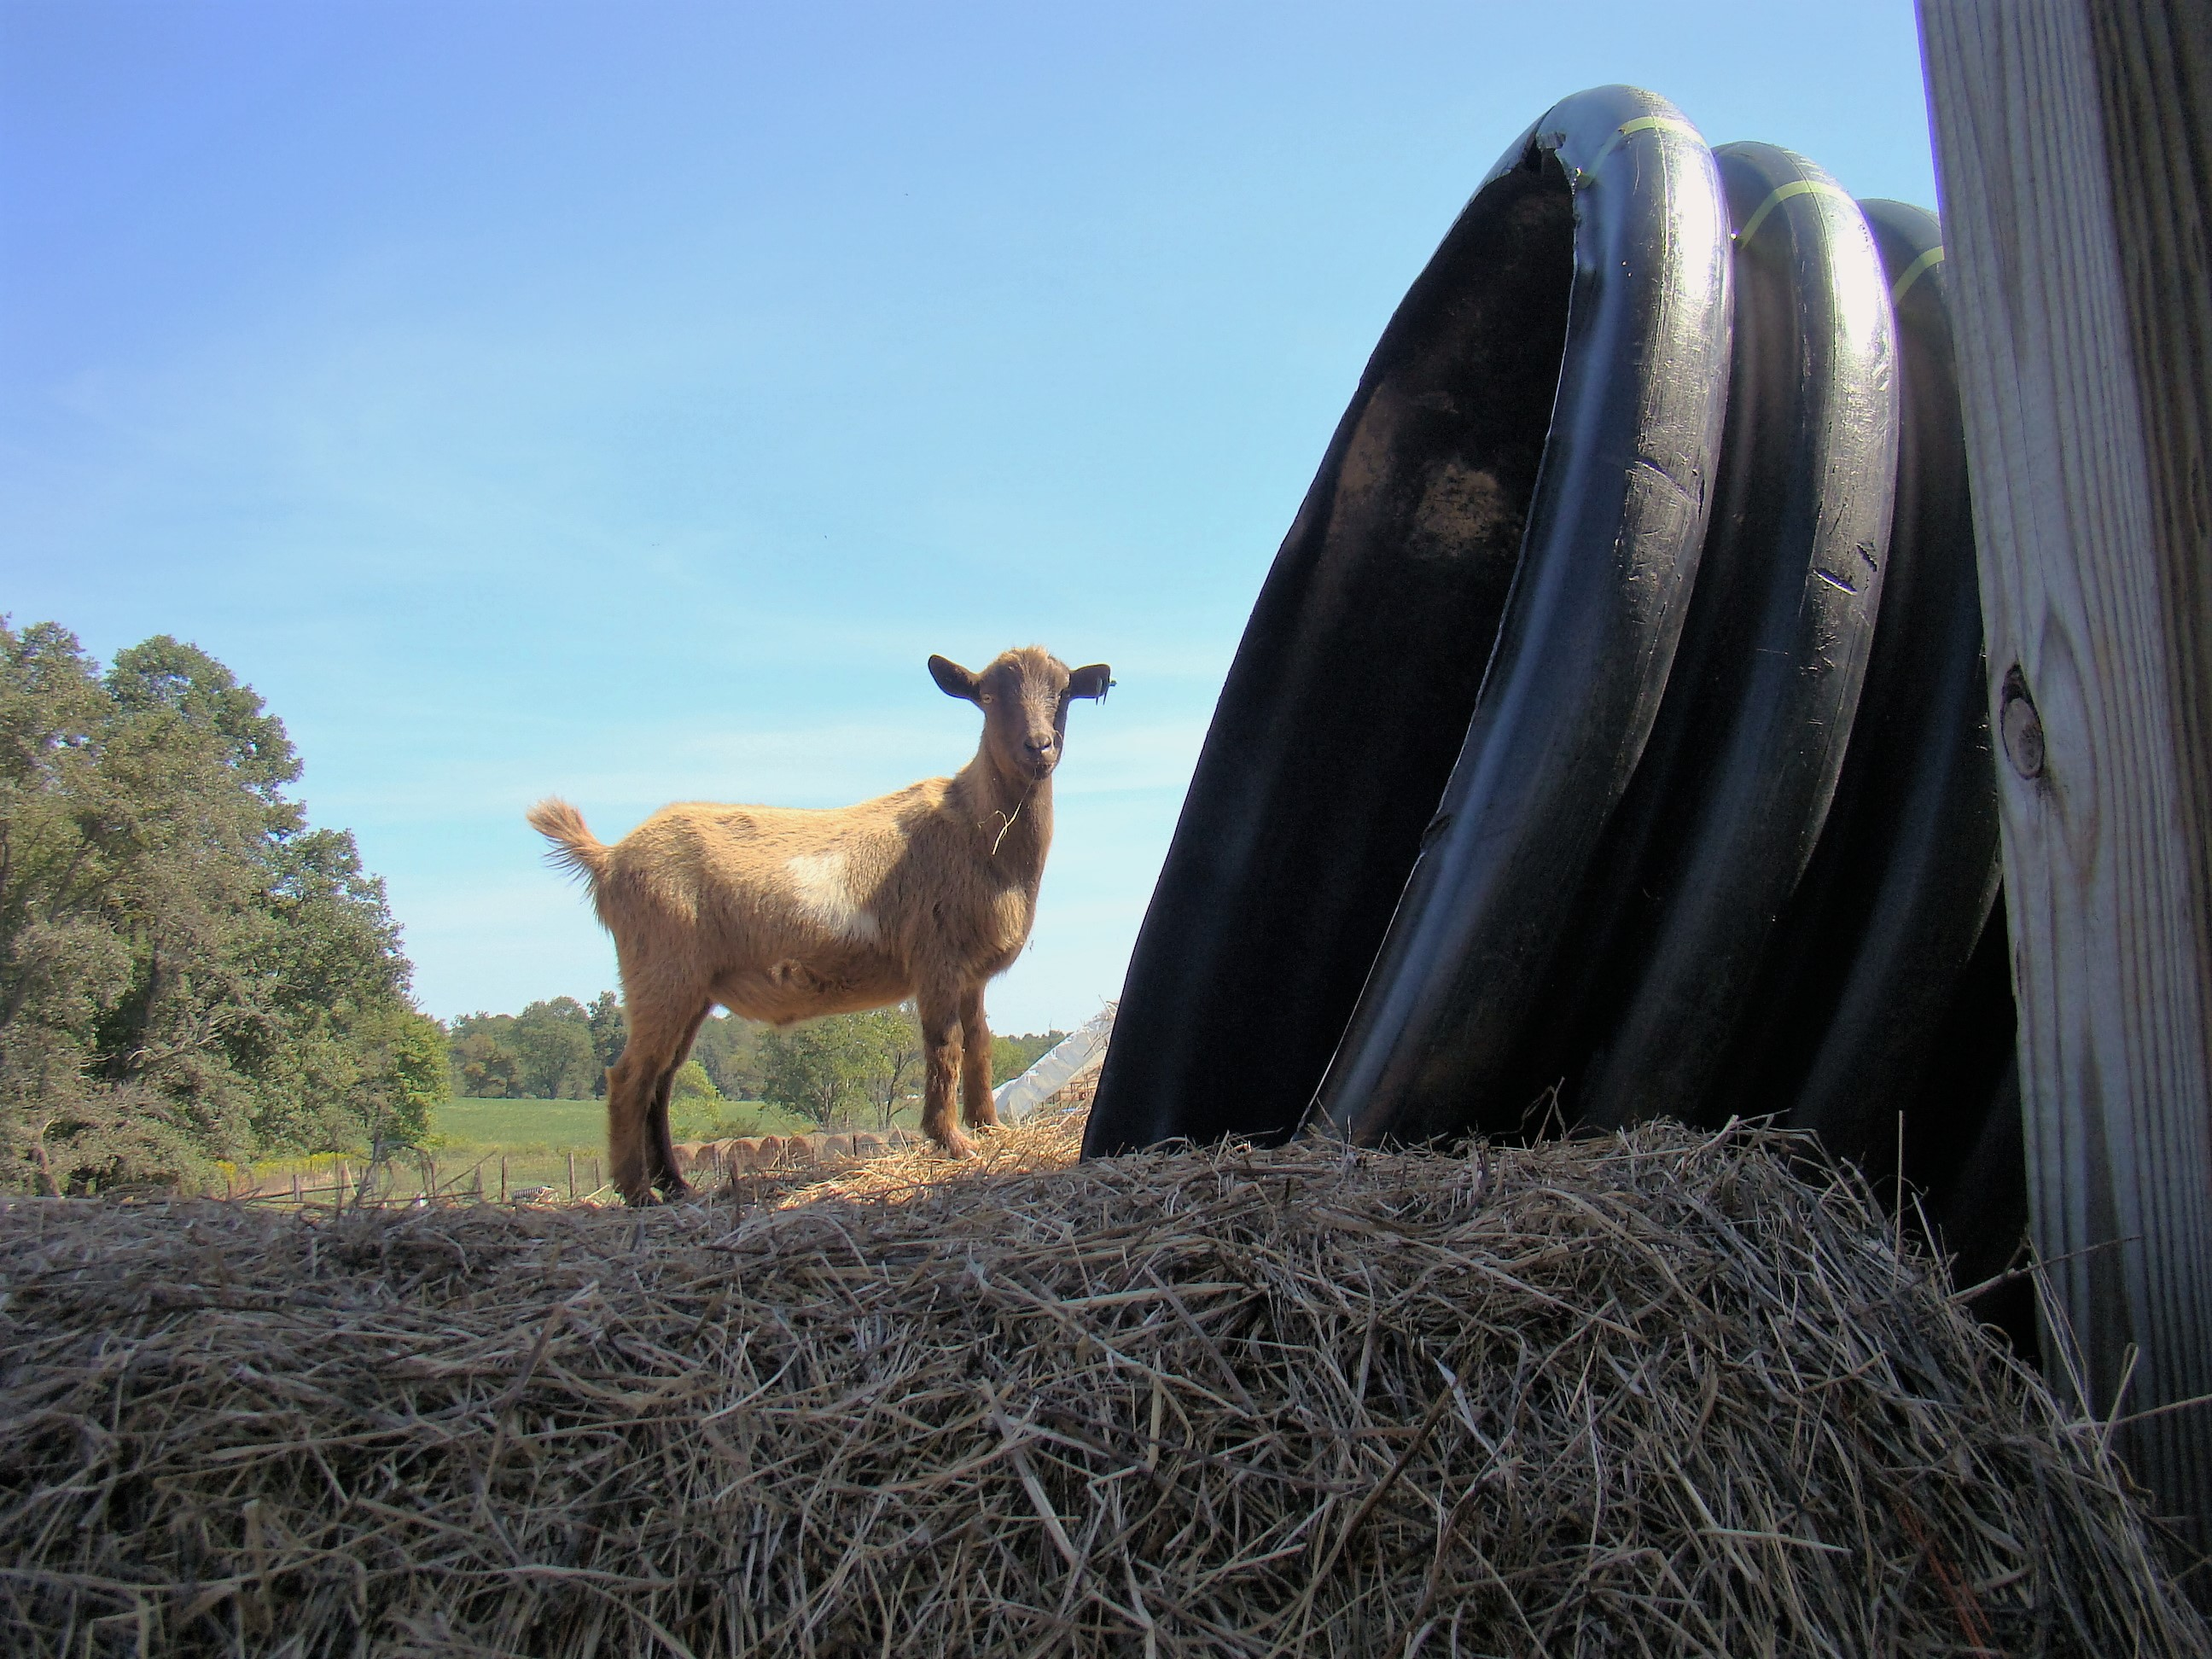 This goat stands on top of a large bale of round ray and peers into the plastic pipe used as a slide. Should he or shouldn't he?